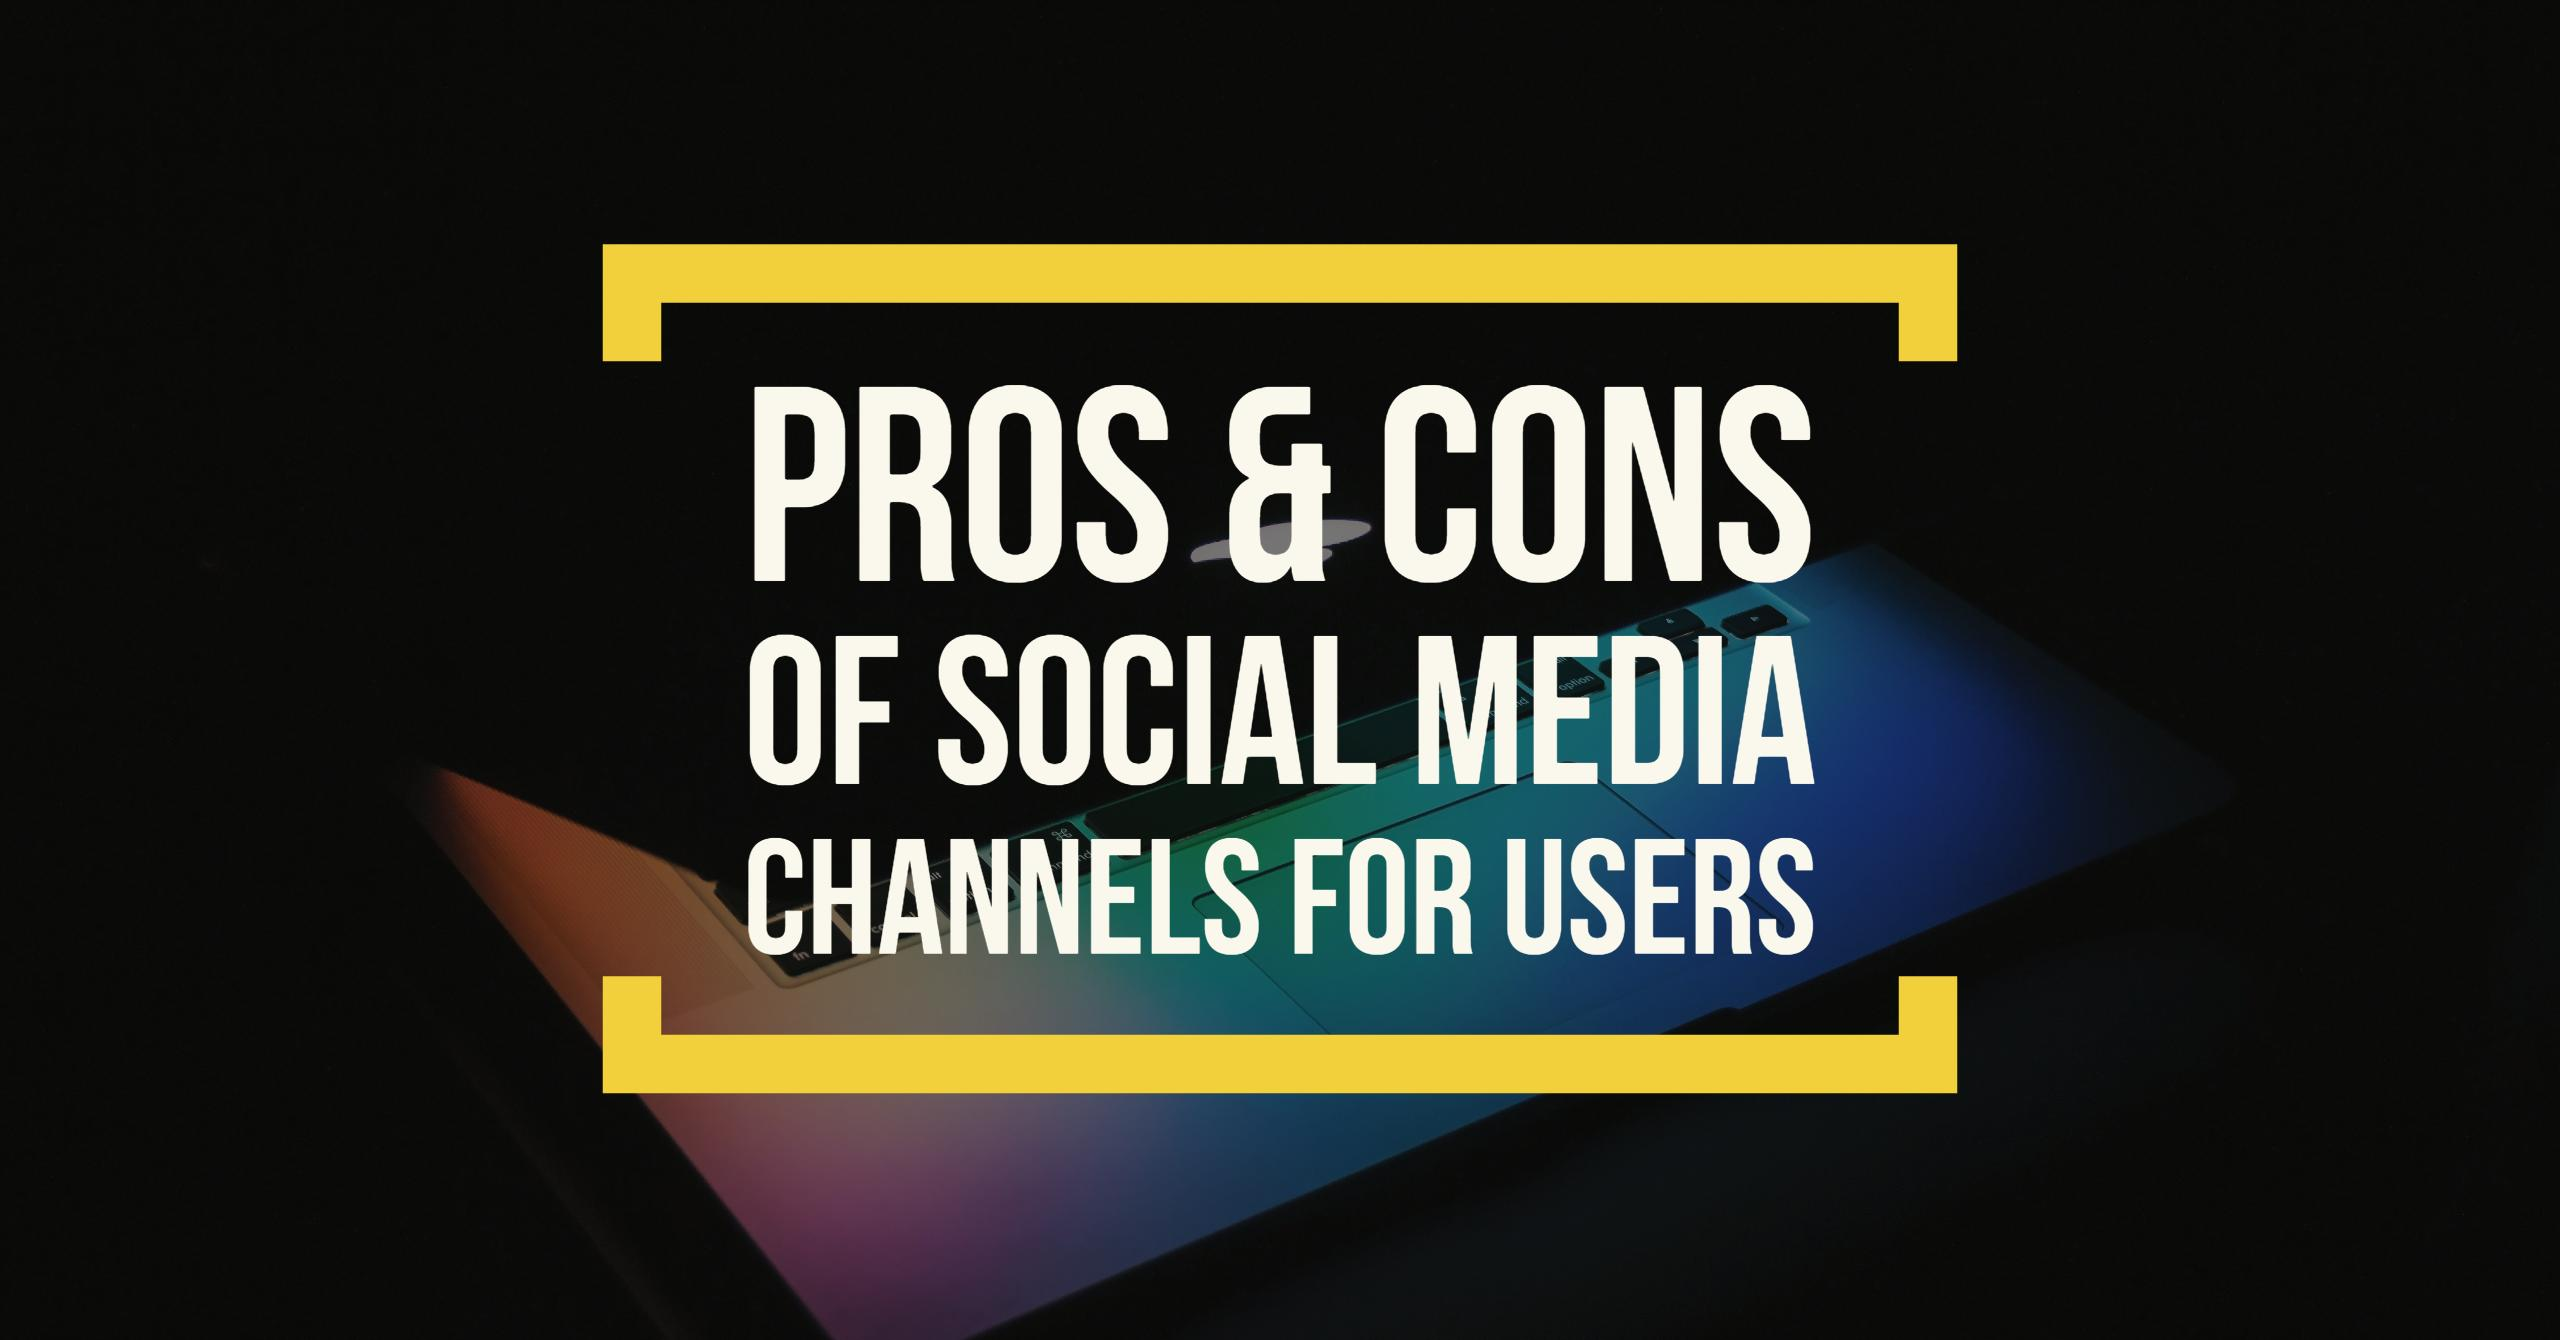 pros cons of imc channels Although integrated marketing communications requires a lot of effort it delivers many benefits it can create competitive advantage, boost sales and profits, while saving money, time and stress.